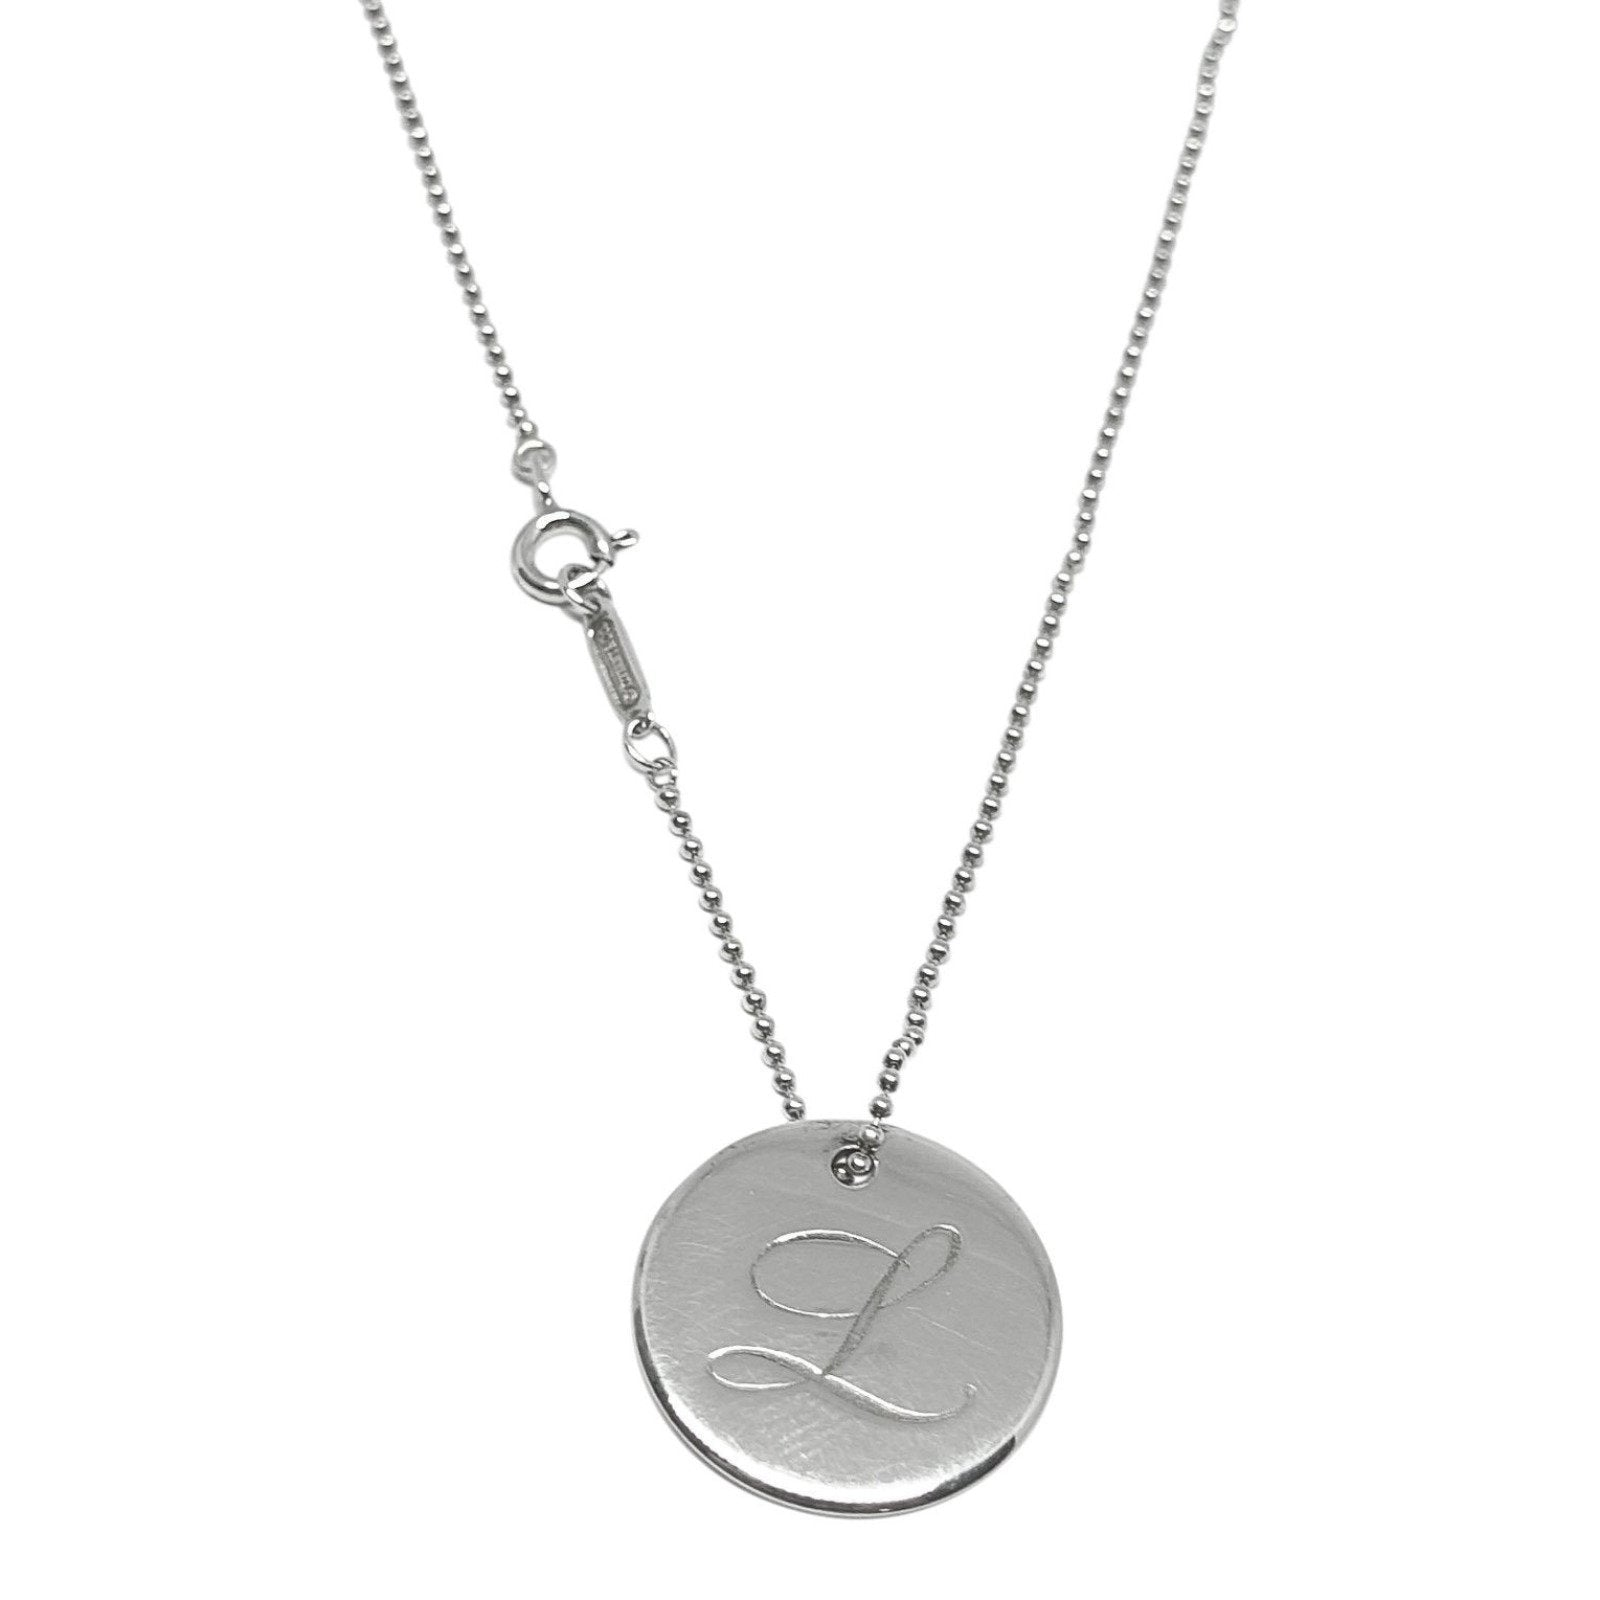 cd05581fe Tiffany & Co. Notes Letter 'L' Disc Charm Pendant Necklace Necklaces Tiffany  ...